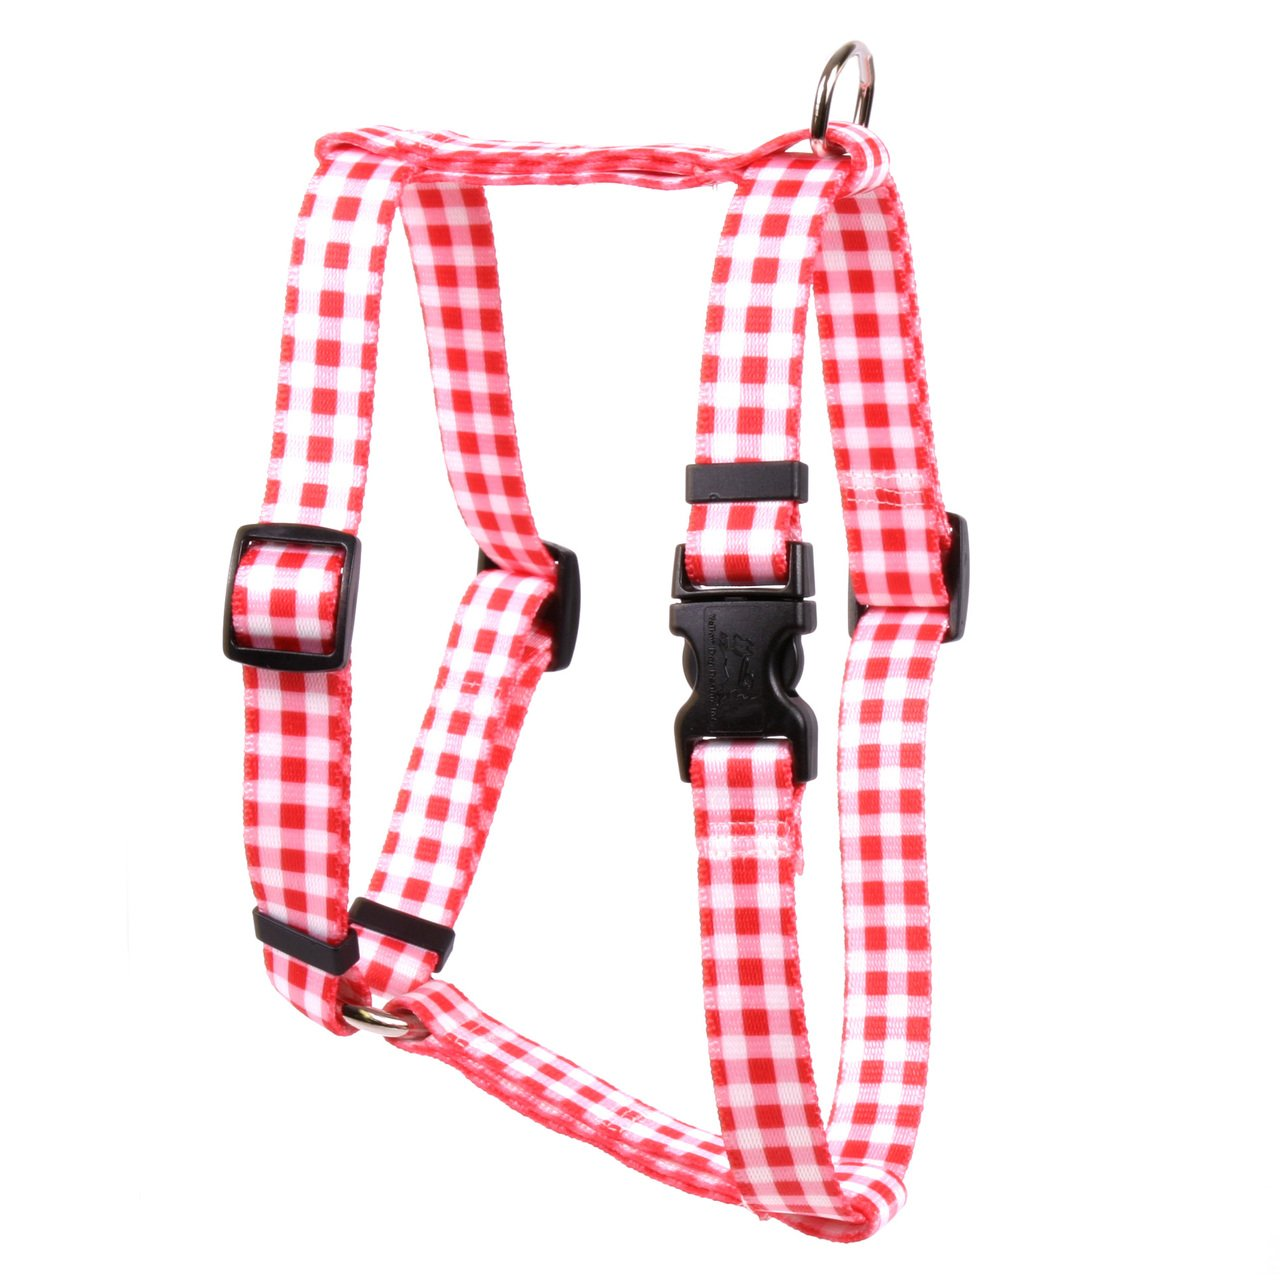 Yellow Dog Design Gingham Red Roman Style H Dog Harness, Large